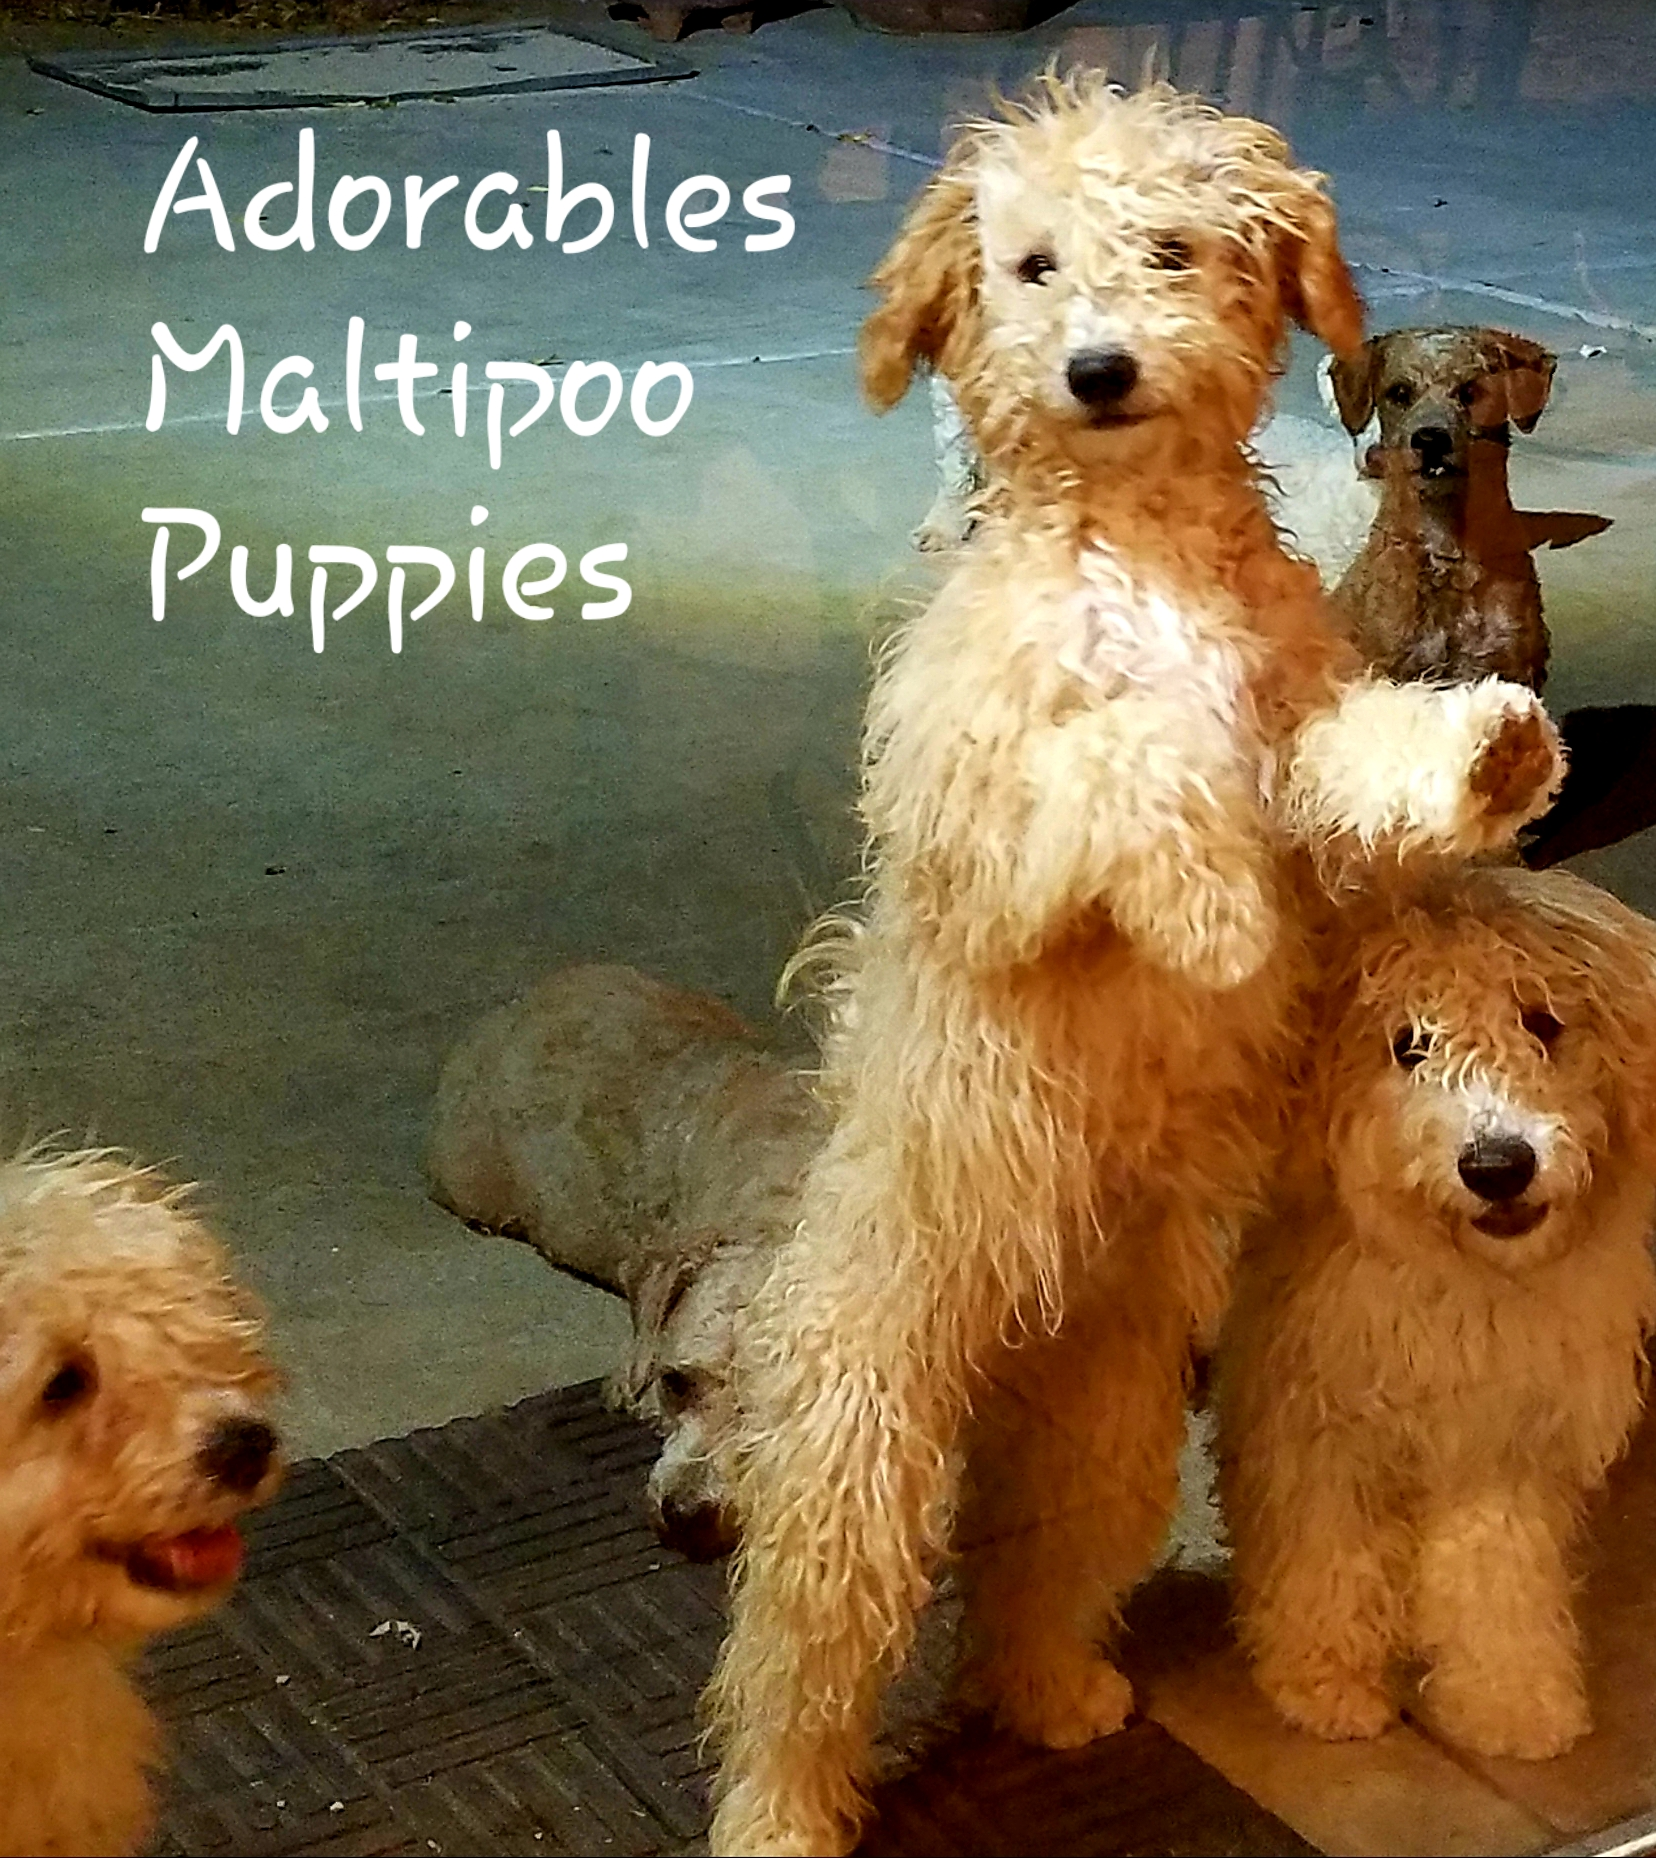 Adorables Maltipoo PUPPIES